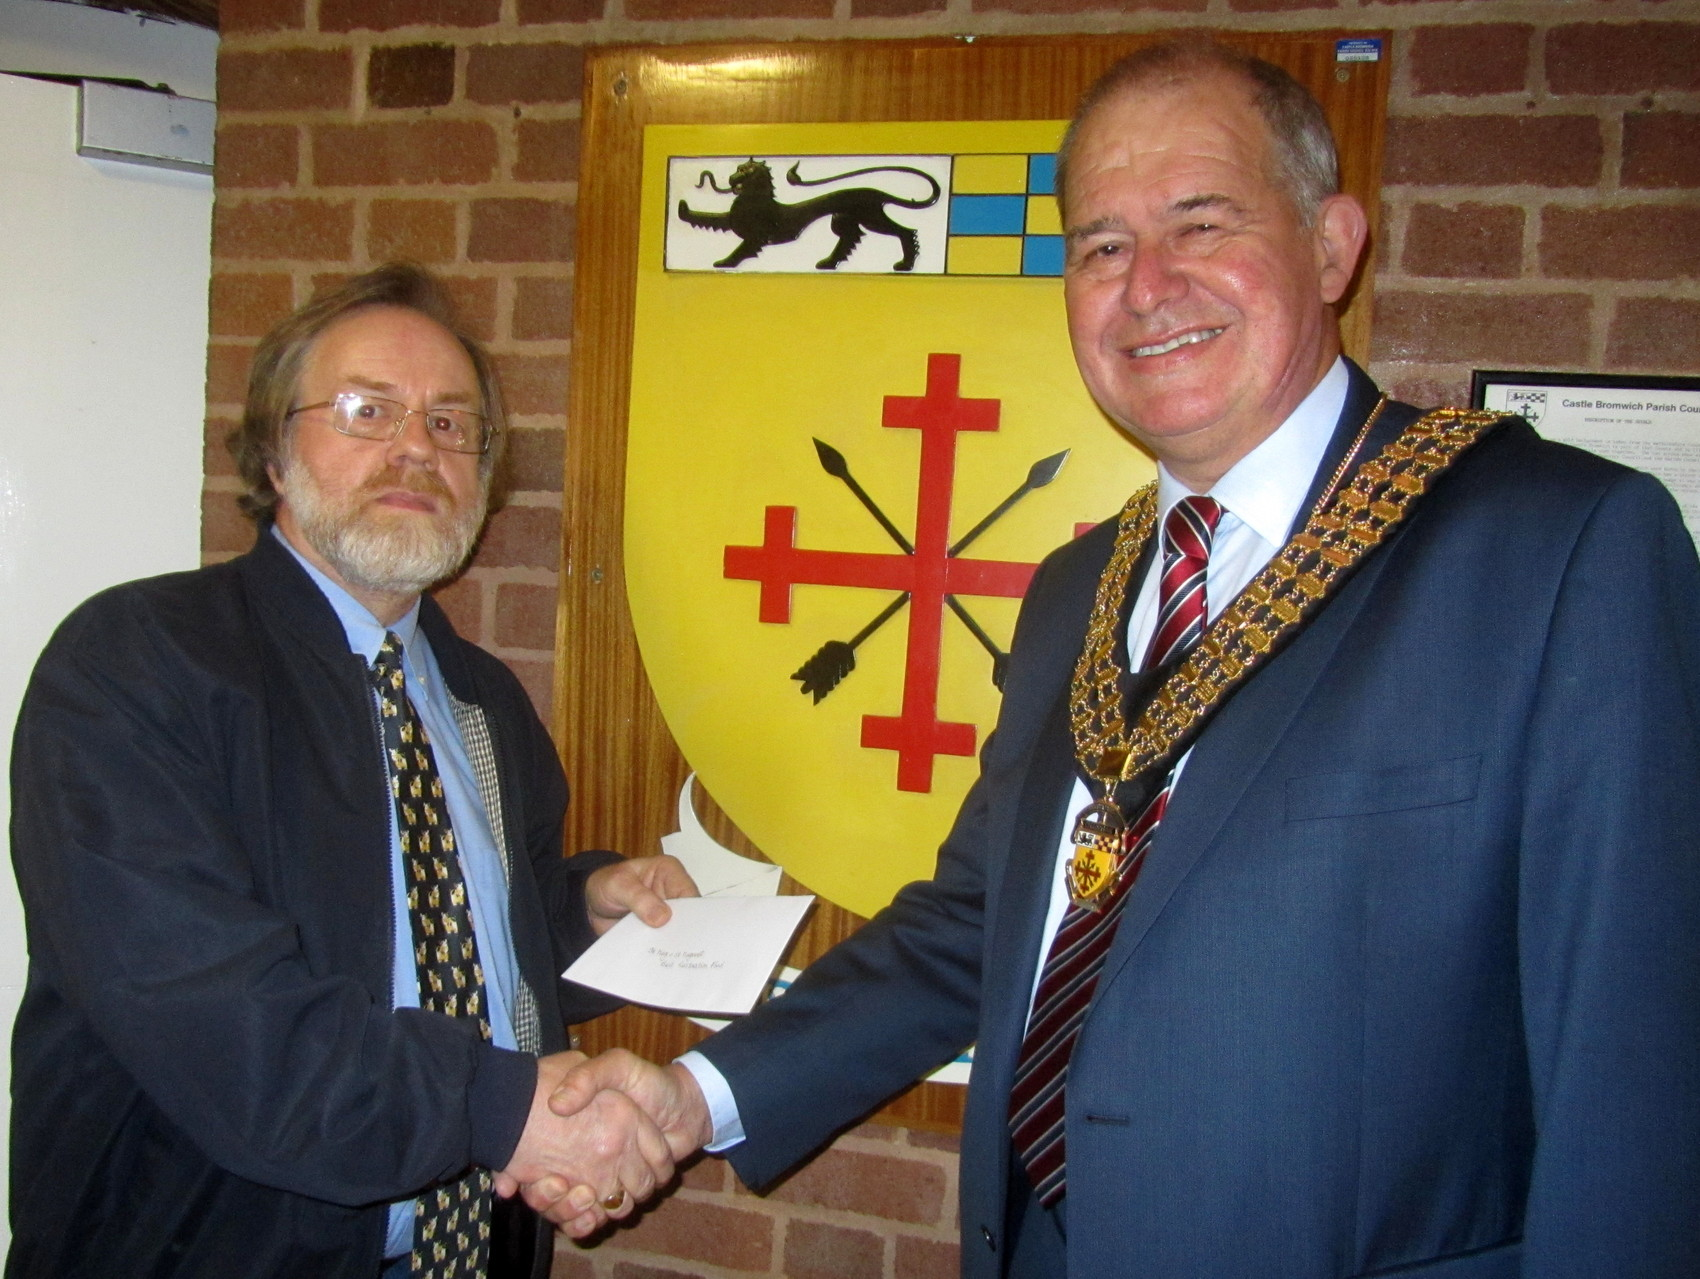 A kind donation from Castle Bromwich Parish Council for the Bell Restoration Project